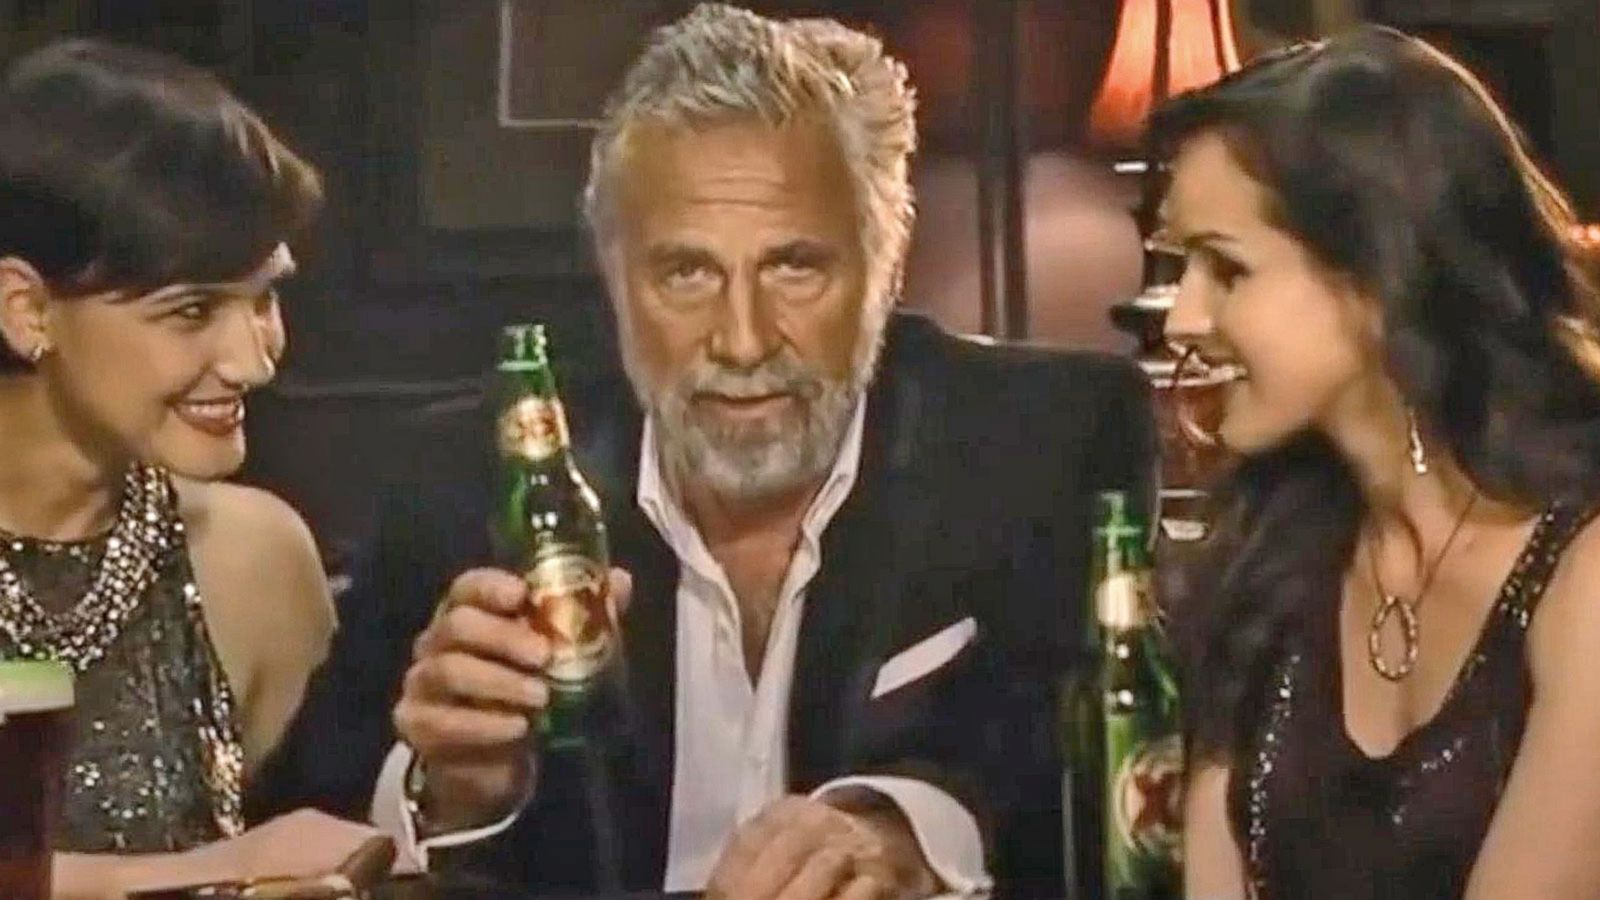 dos equis most interesting man actor locked in legal battle with